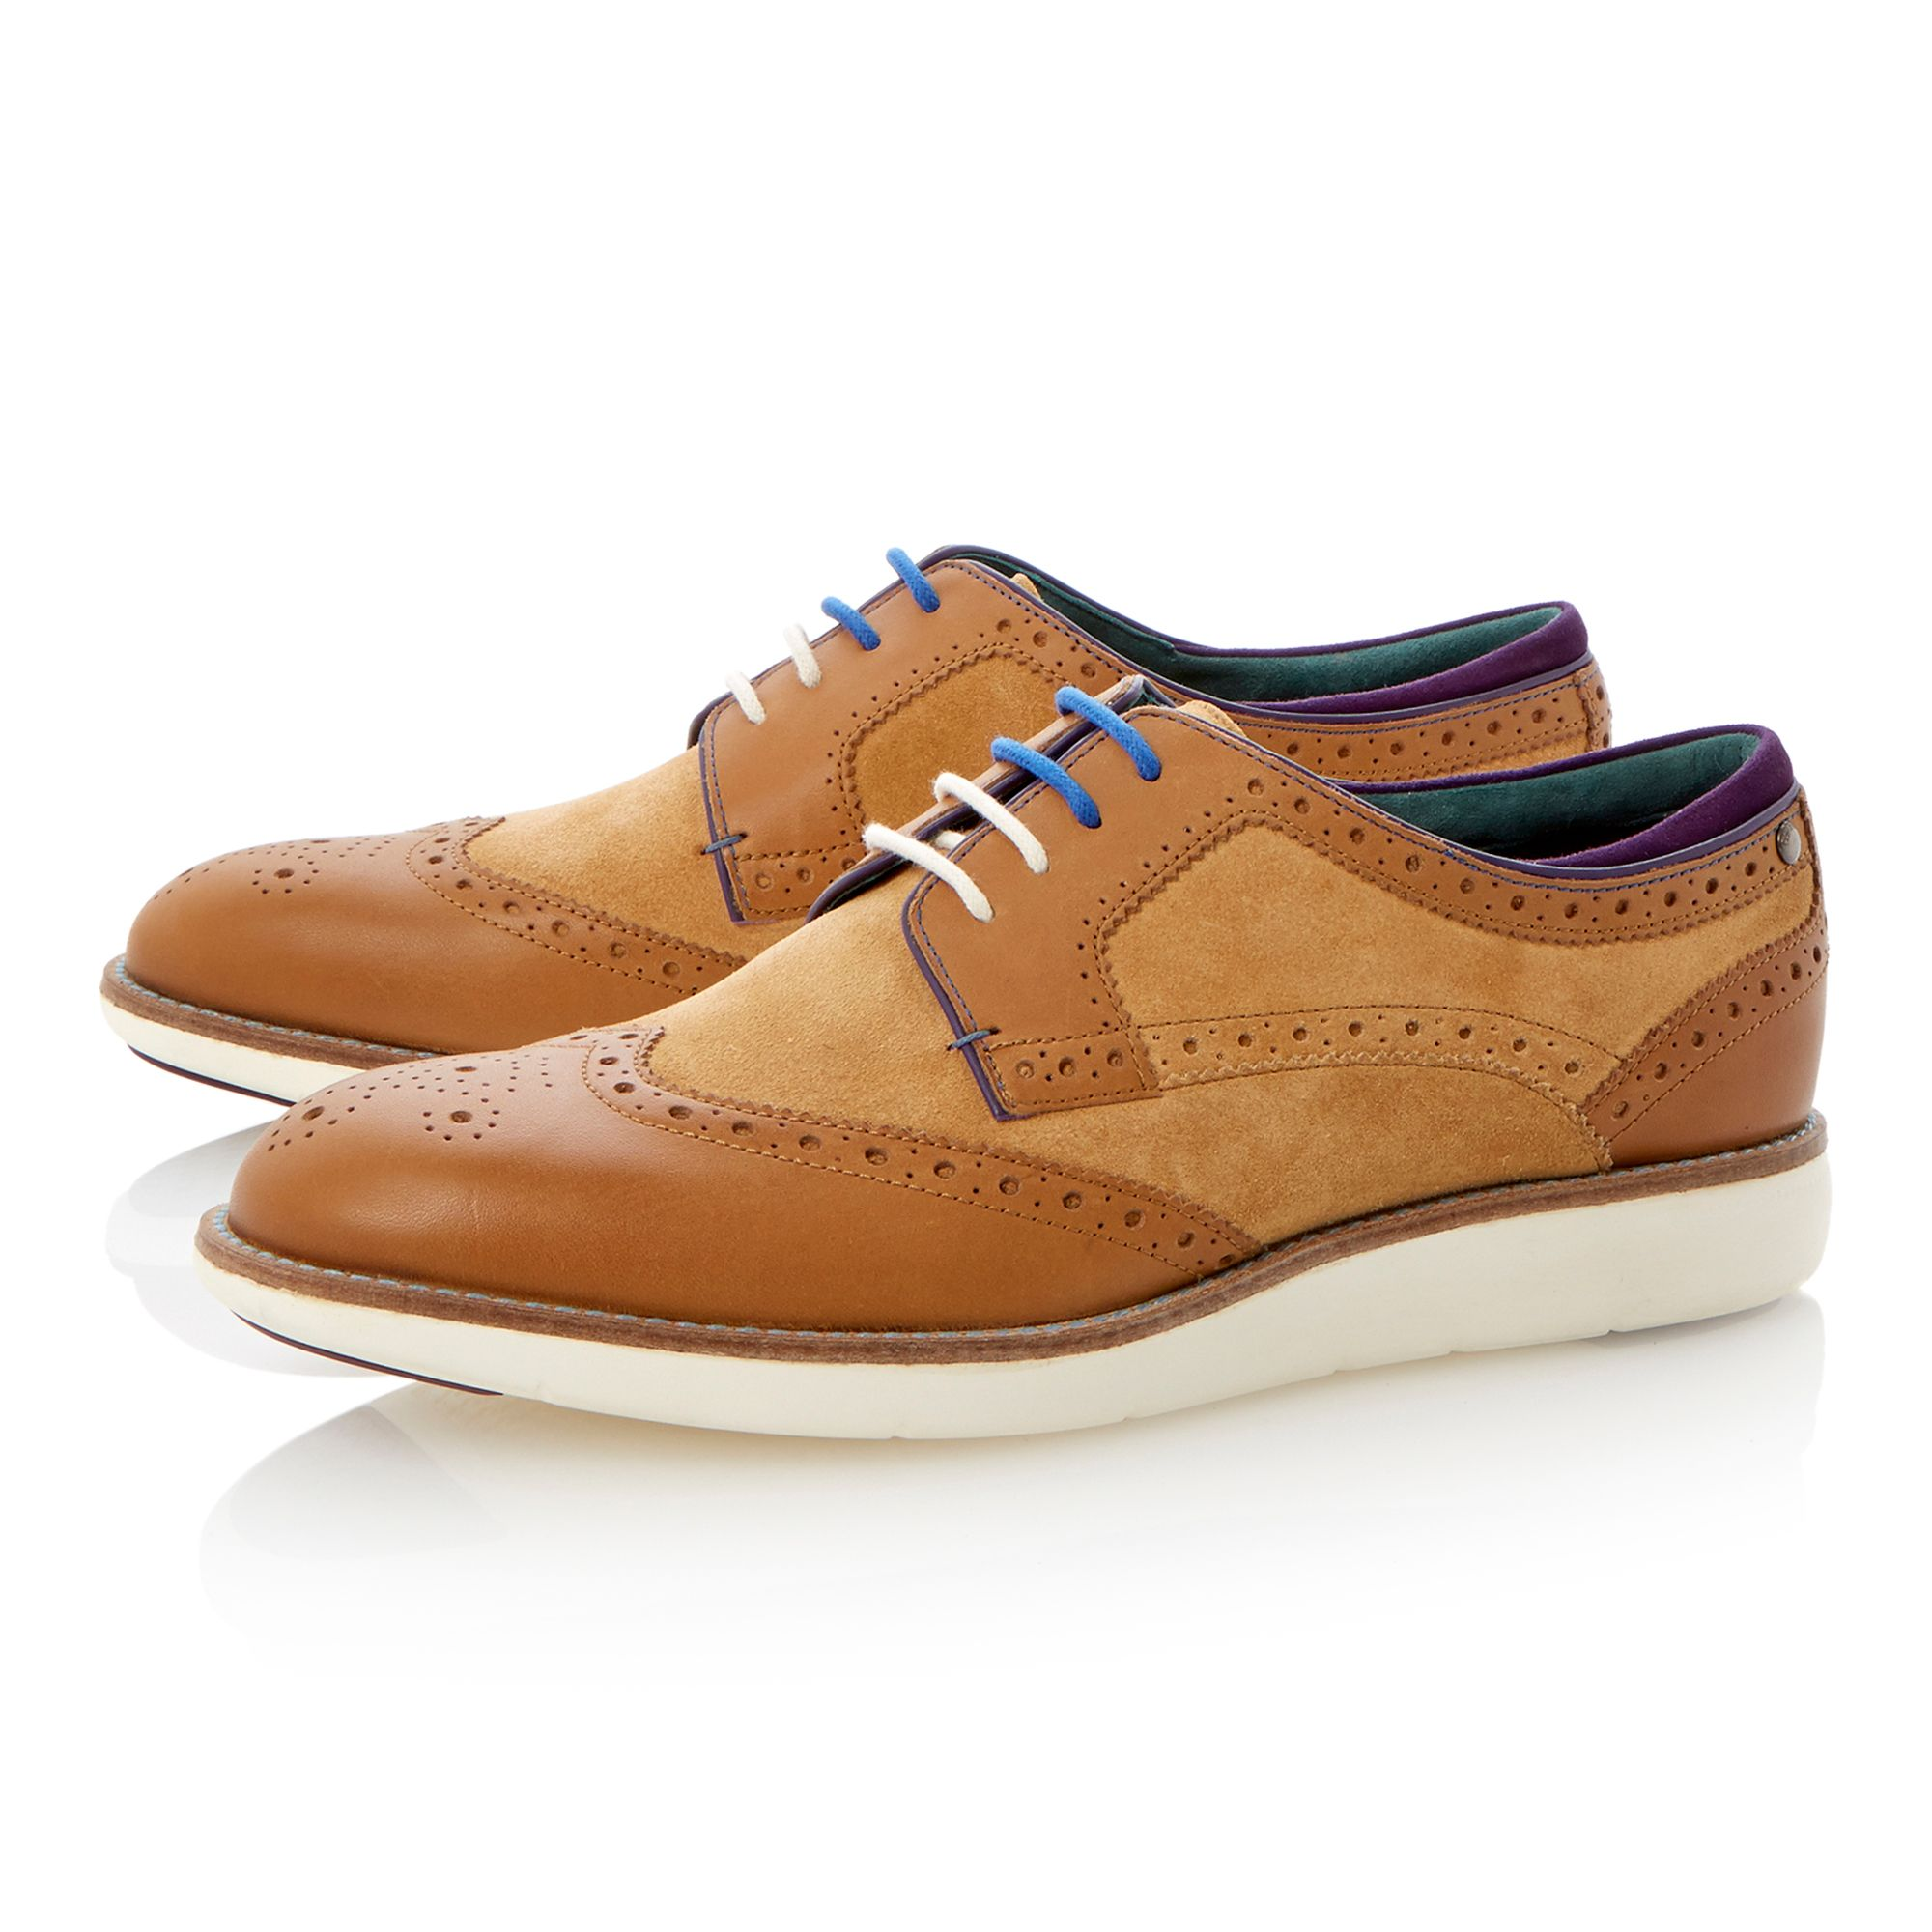 Treey lace up extralight sole brogues